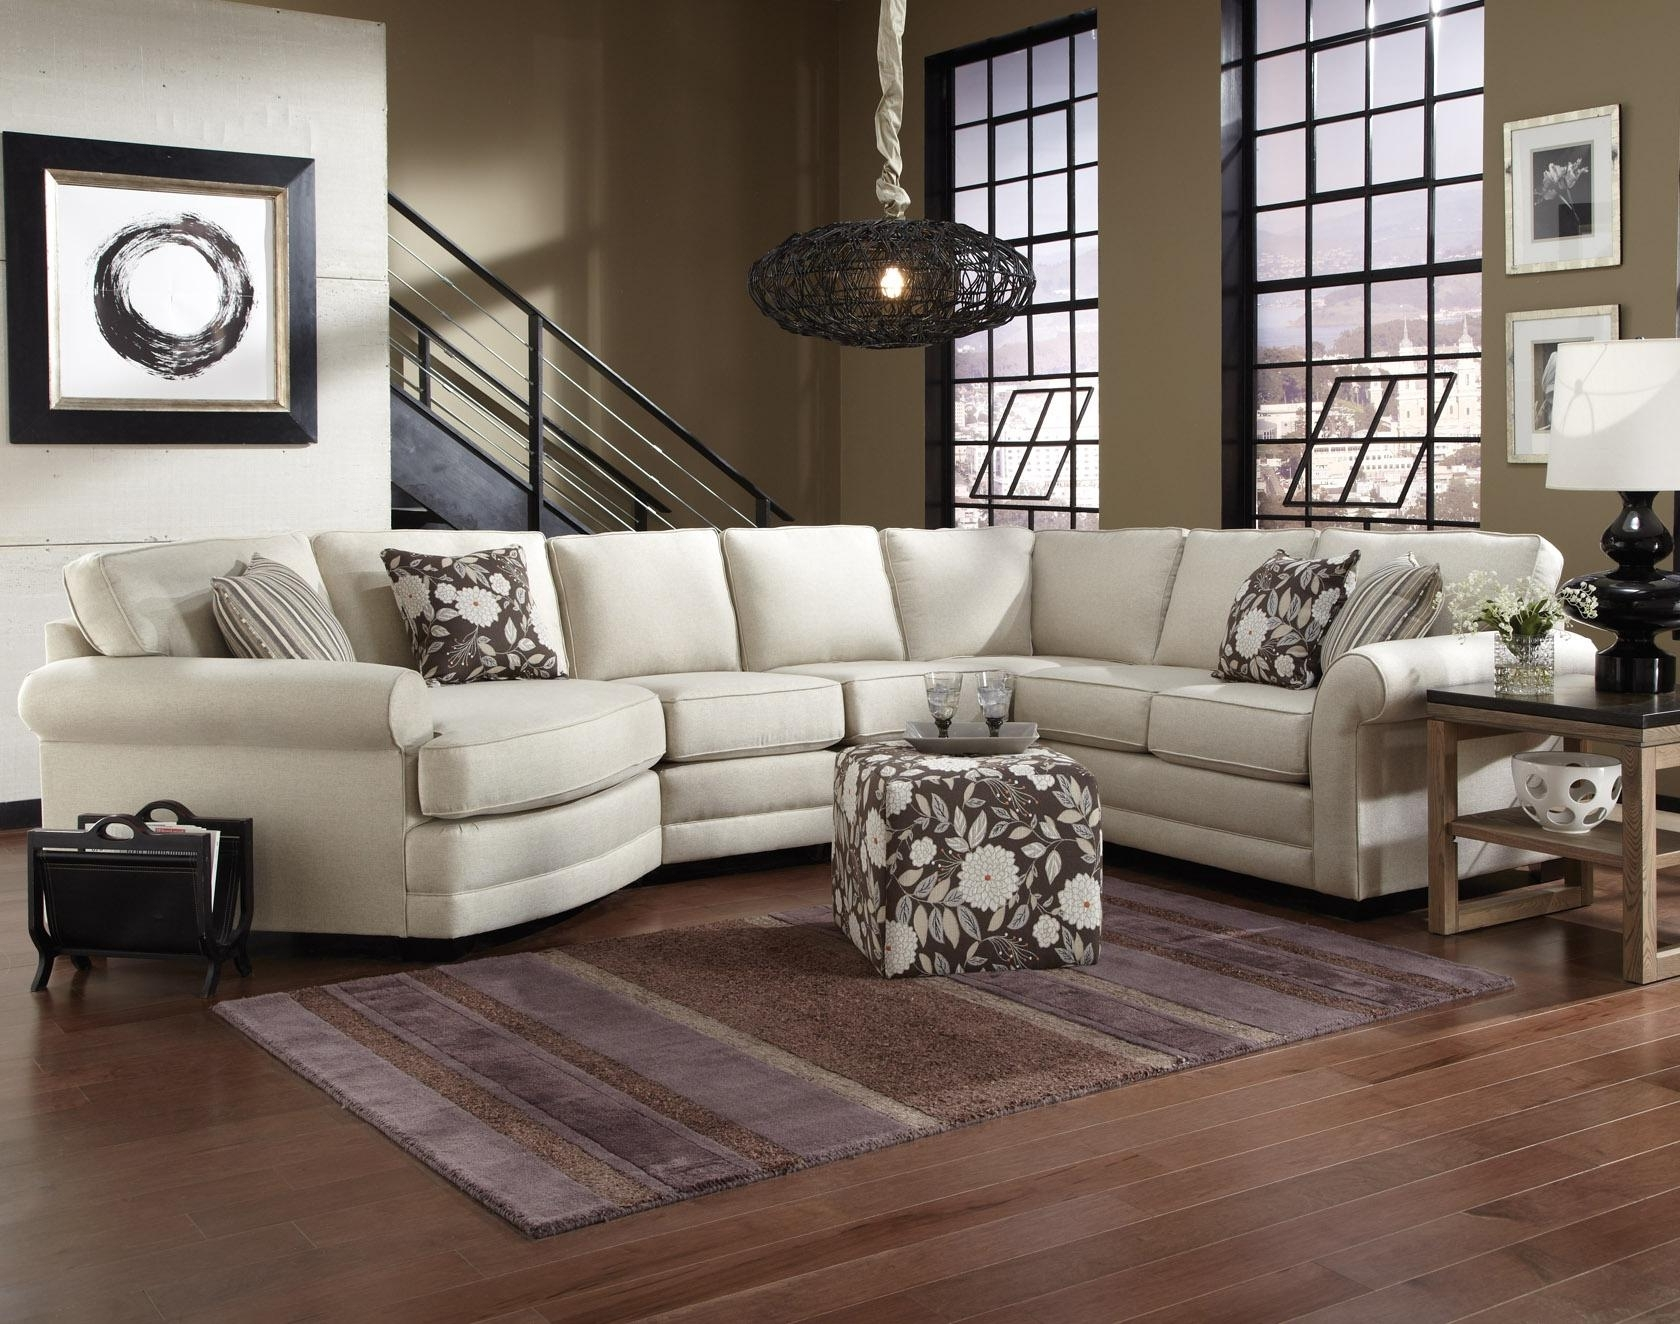 Dunk Throughout Most Current Sectional Sofas With Cuddler (View 8 of 20)